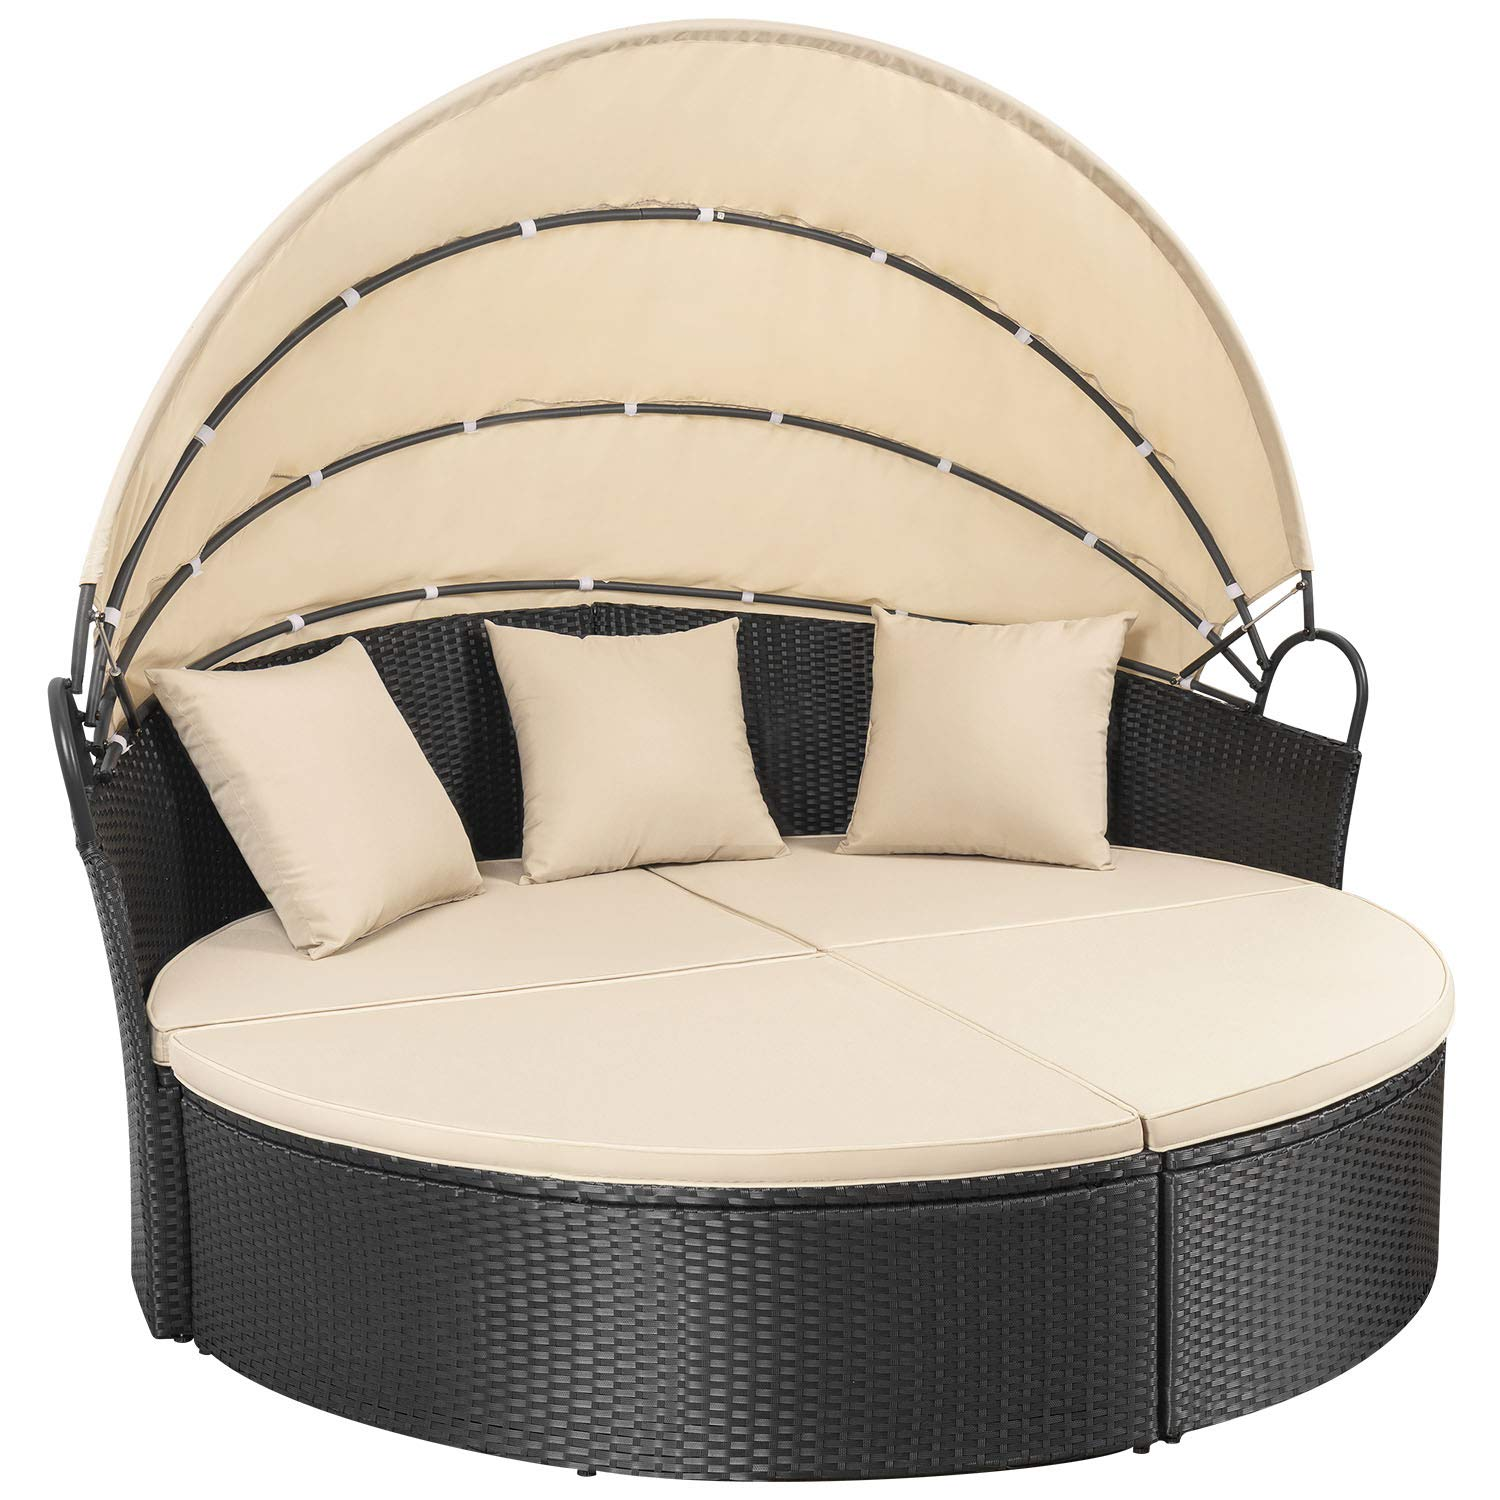 Homall Outdoor Patio Round Daybed with Retractable Canopy Wicker Furniture Sectional Seating with Washable Cushions for Patio Backyard Porch Pool Daybed Separated Seating (Beige) by Homall